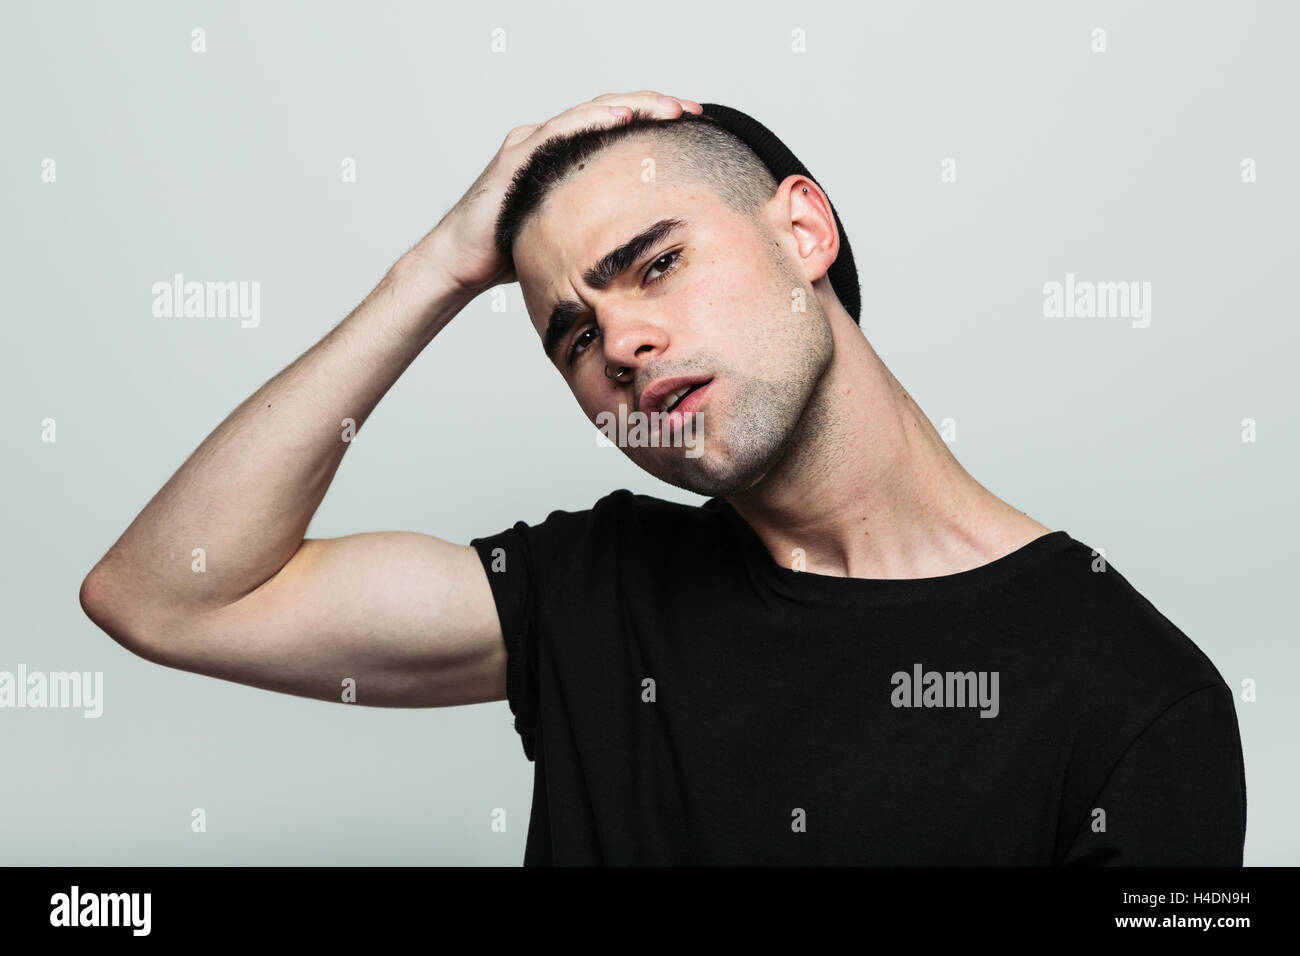 Man gather his brows. - Stock Image